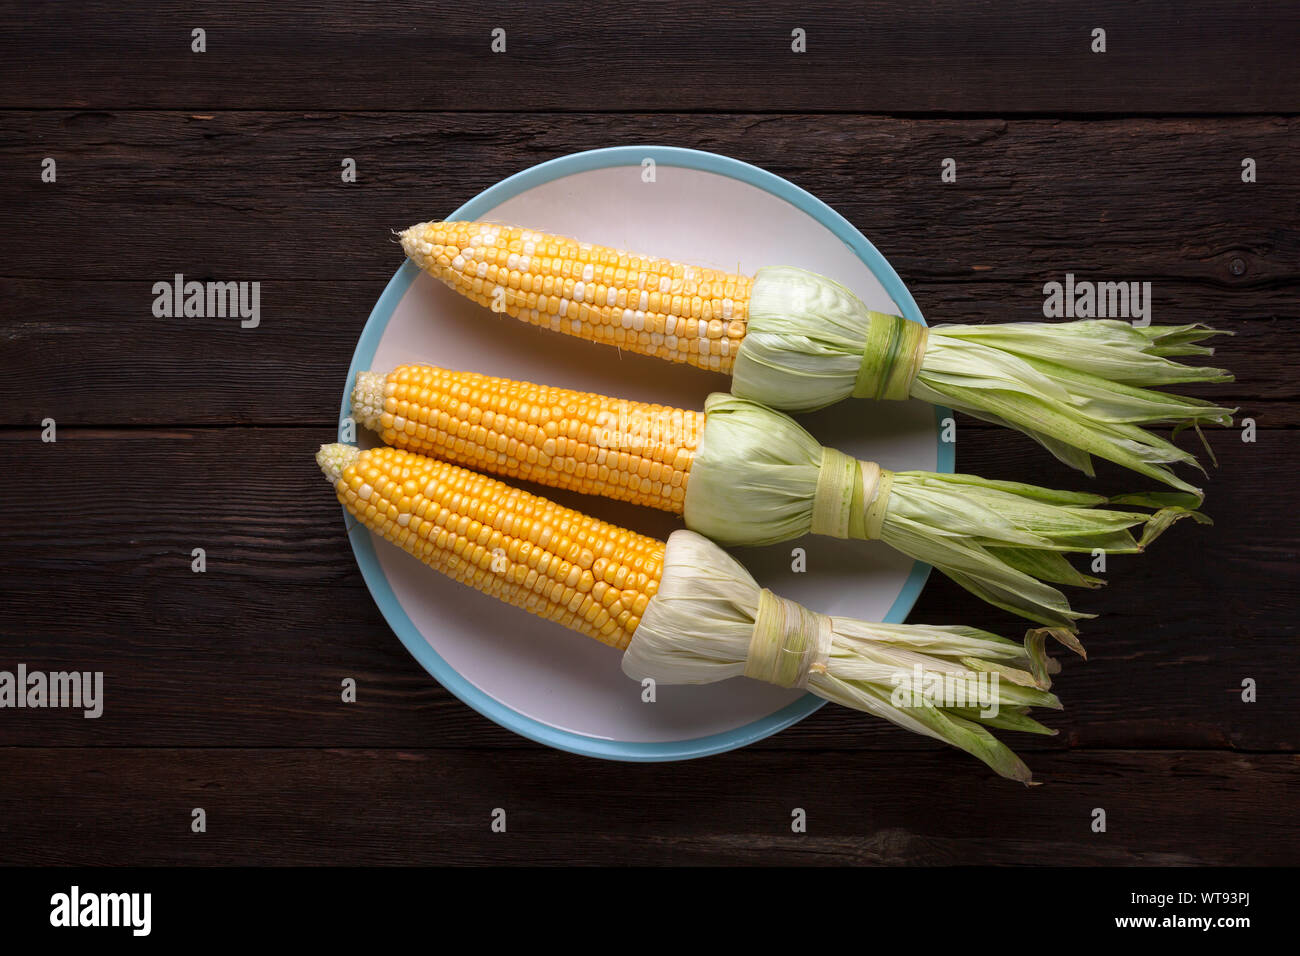 cob, grilled, grilled corn, foil, boiled corn, foil wrapped, corn cobs, recipe, sweet corn Stock Photo